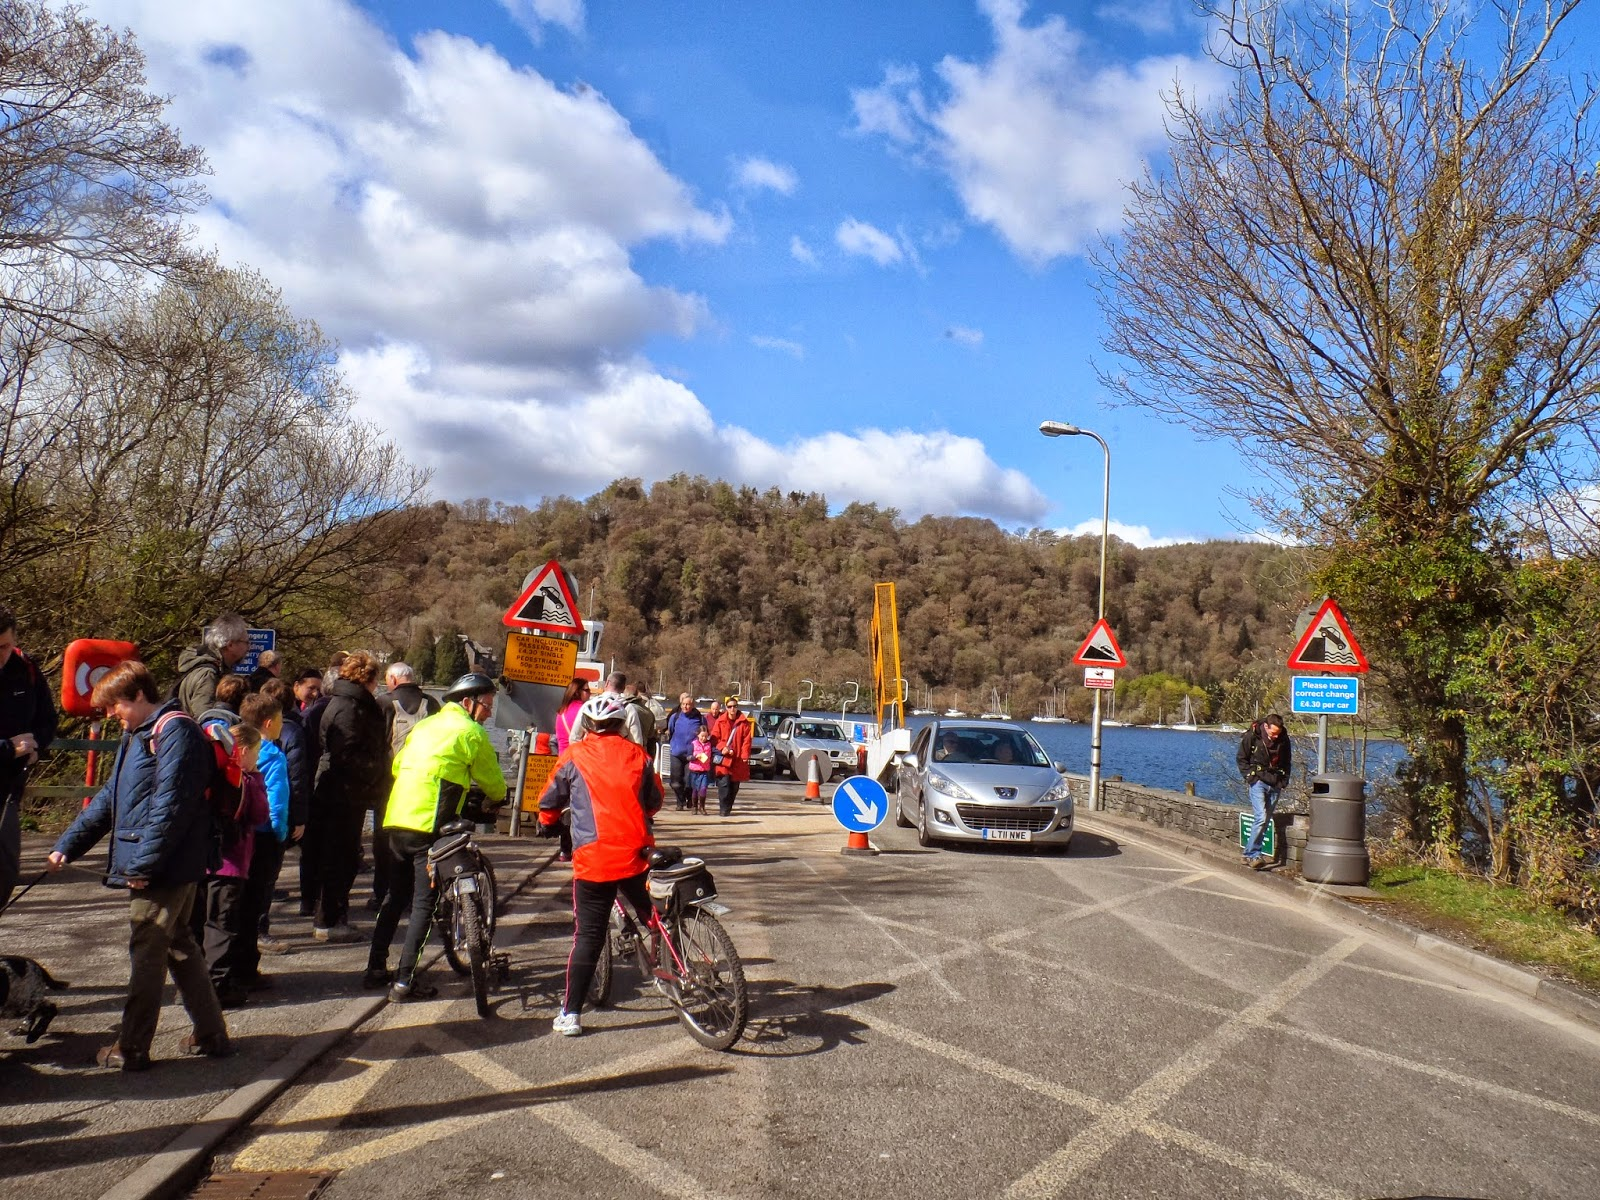 Waiting for the Windermere ferry.